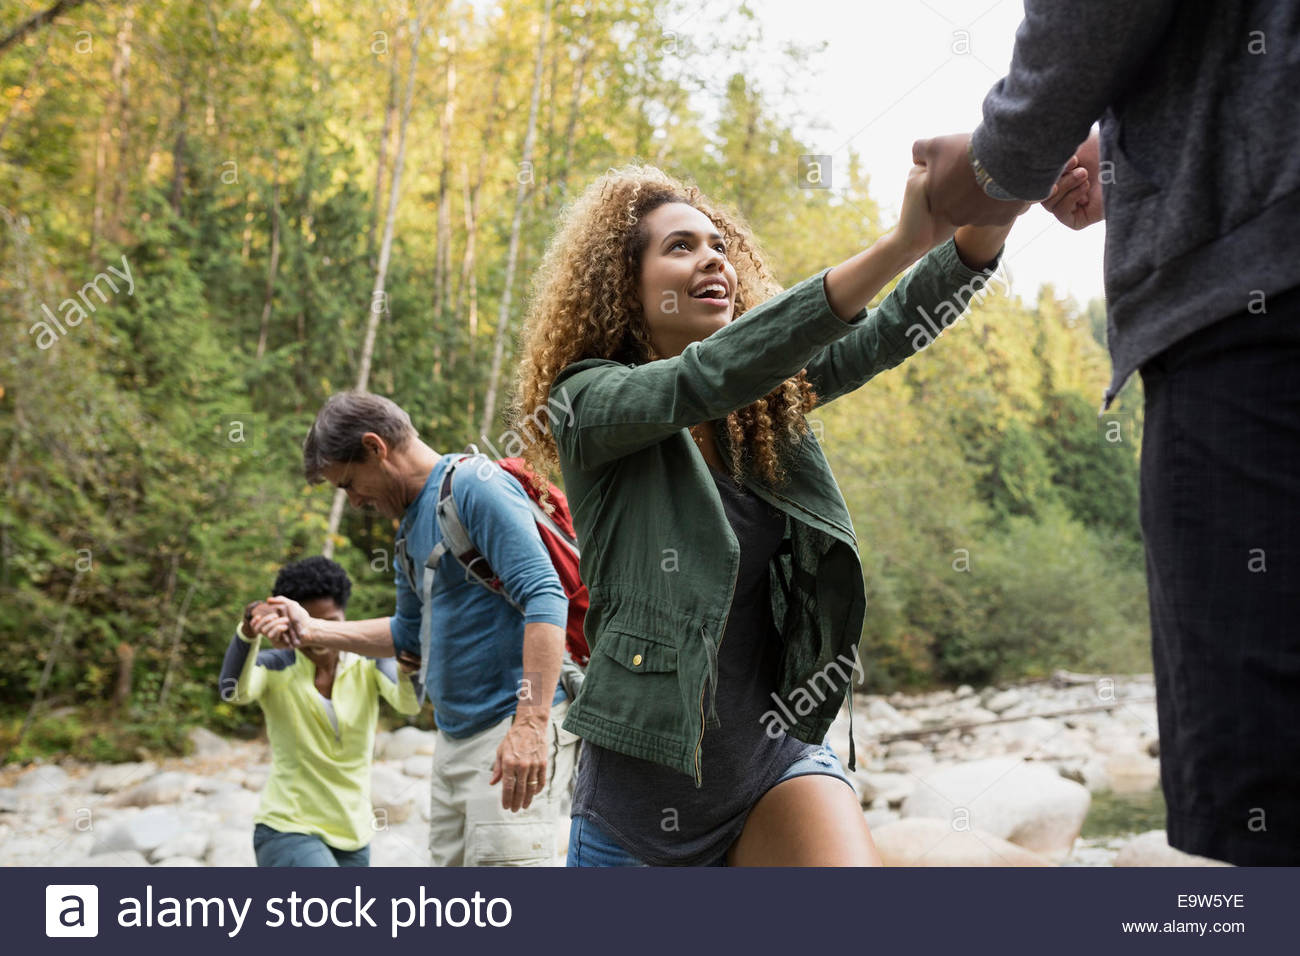 Friends crossing rocks over creek in woods - Stock Image